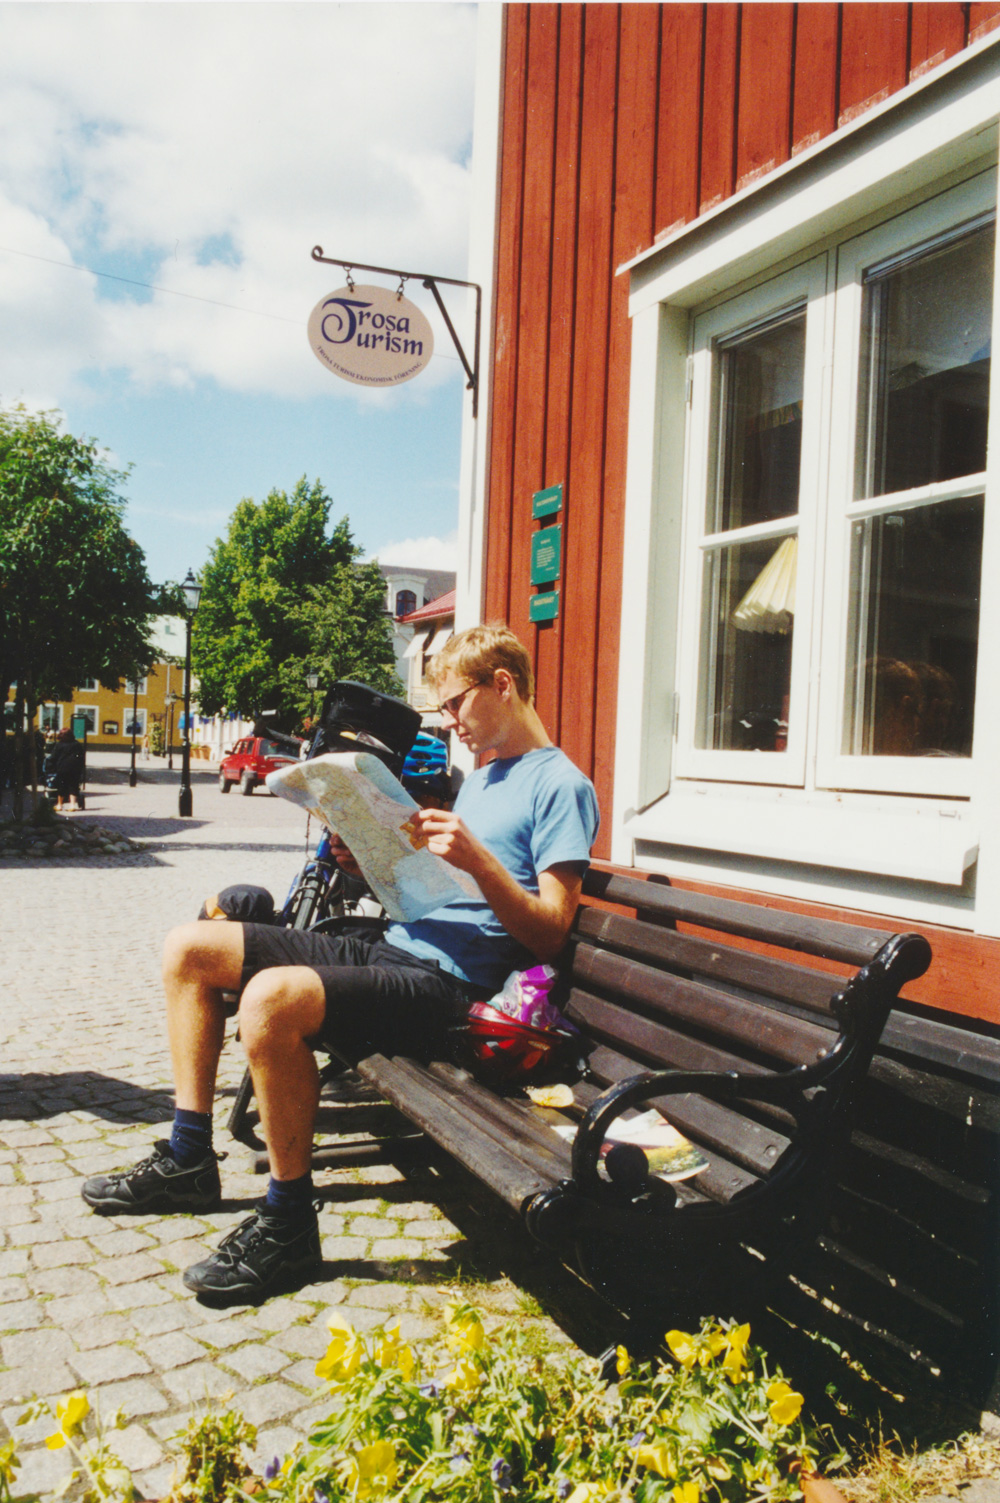 Reading the map outside the tourist information in Trosa.